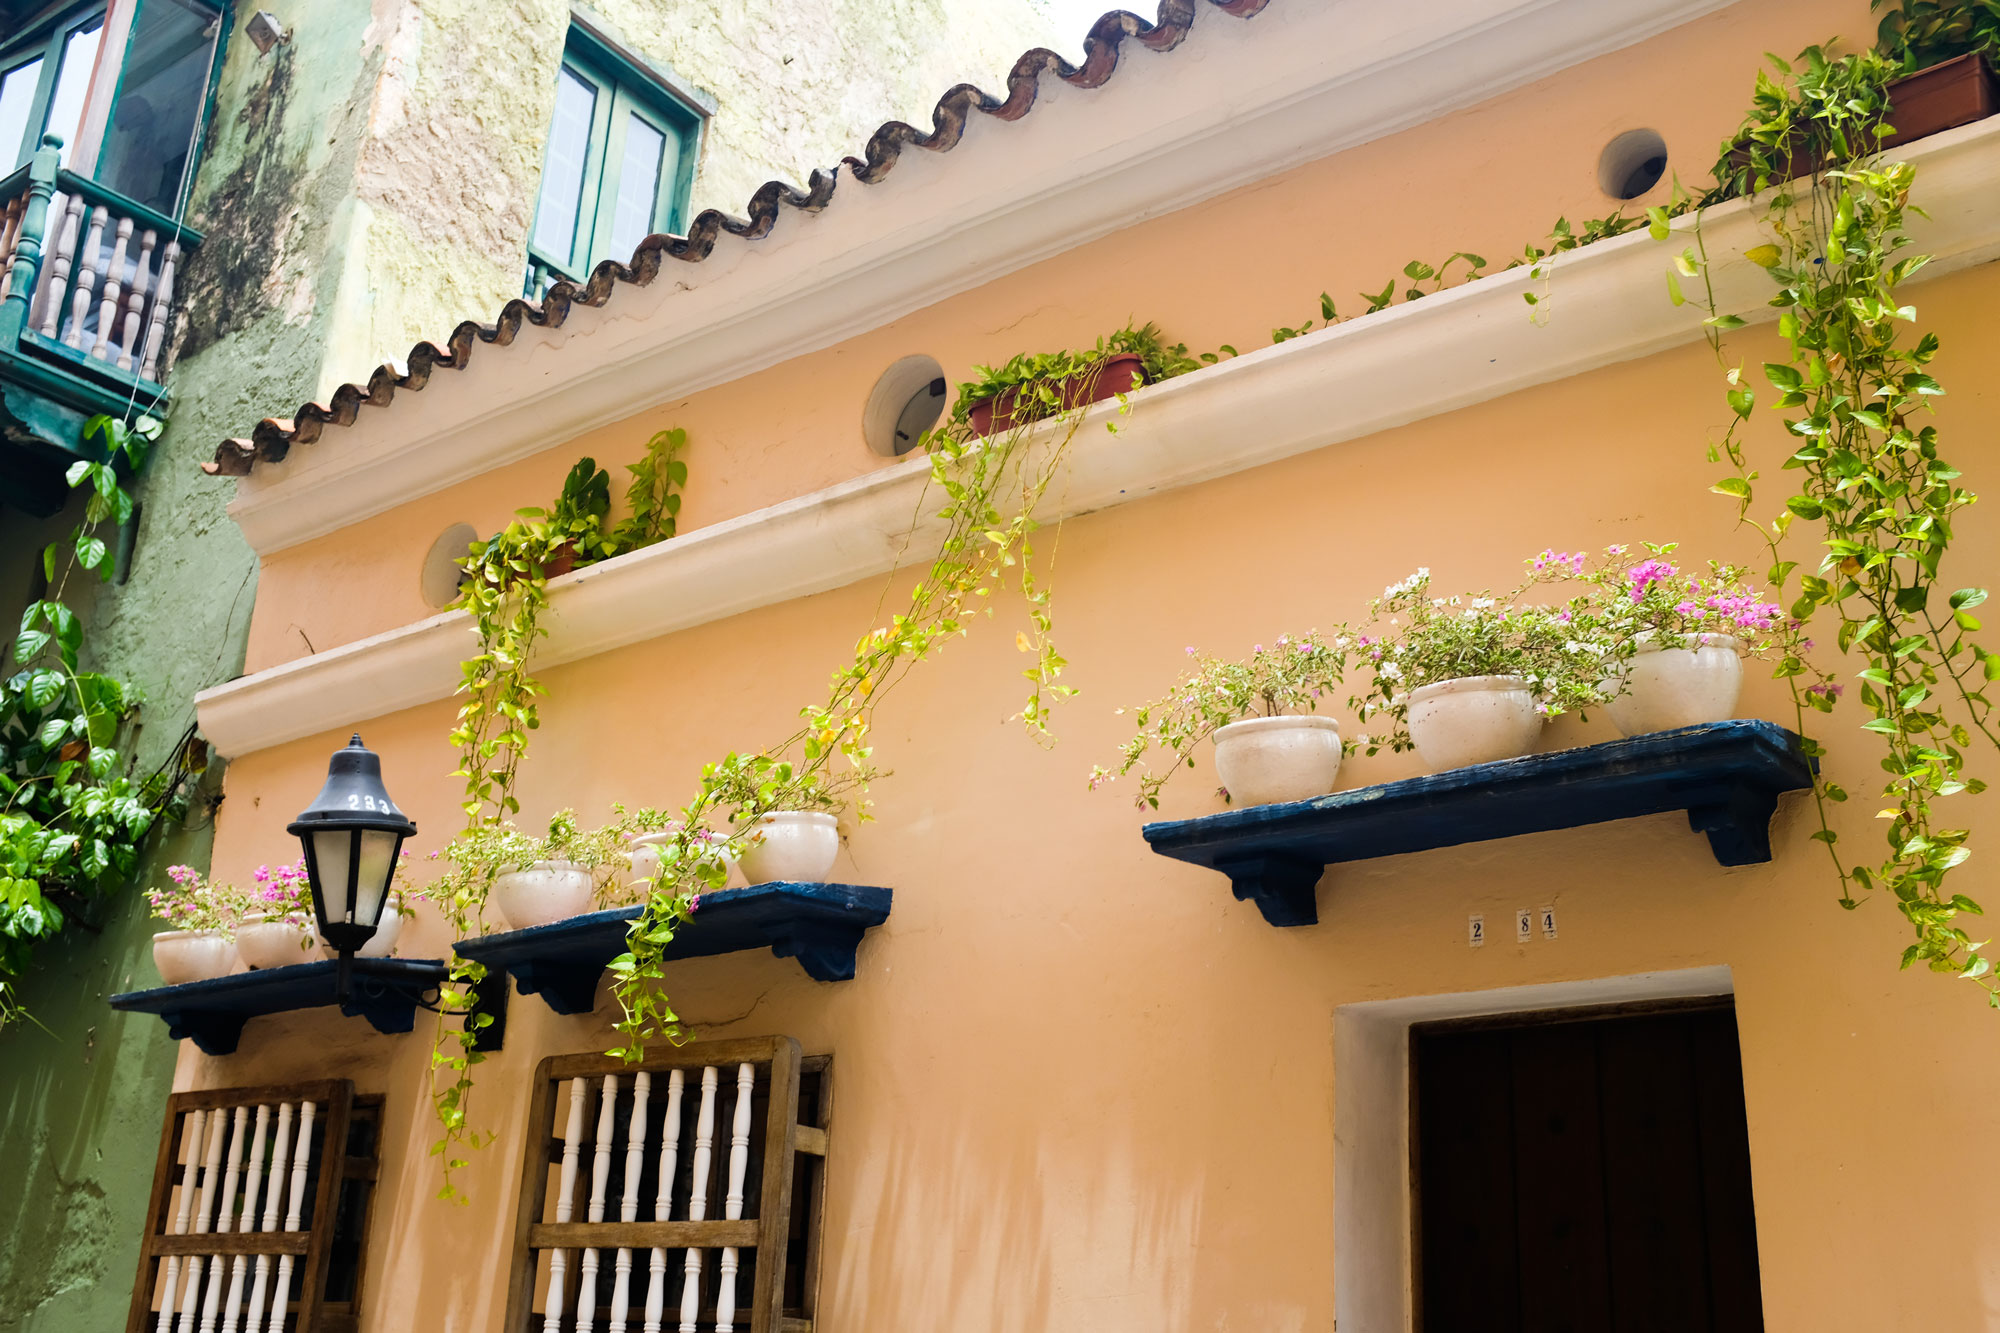 Almost all the facades have some sort of plants intertwining along the walls.